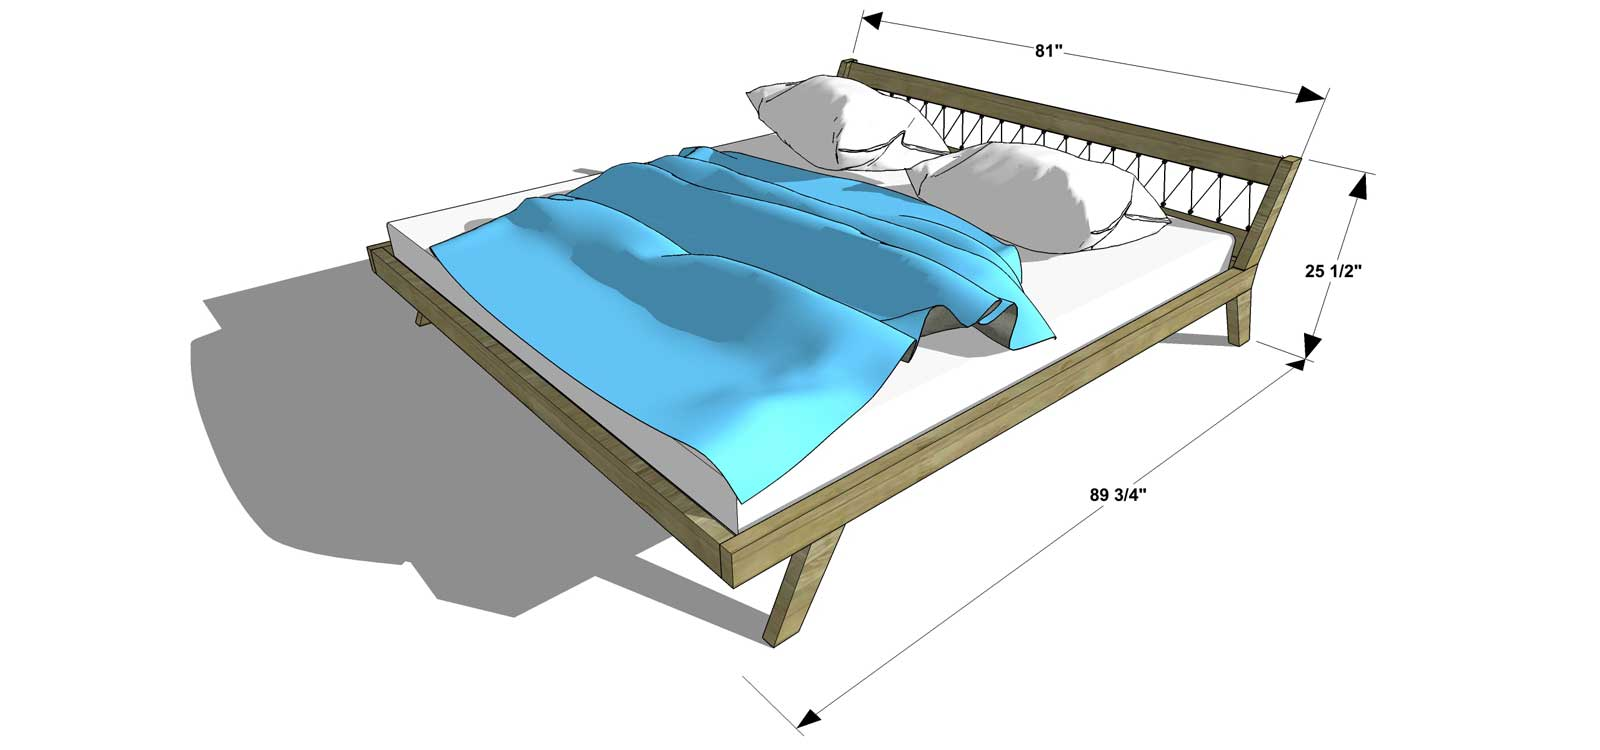 New The Design Confidential Free DIY Furniture Plans How to Build a King Sized Mellow Bed